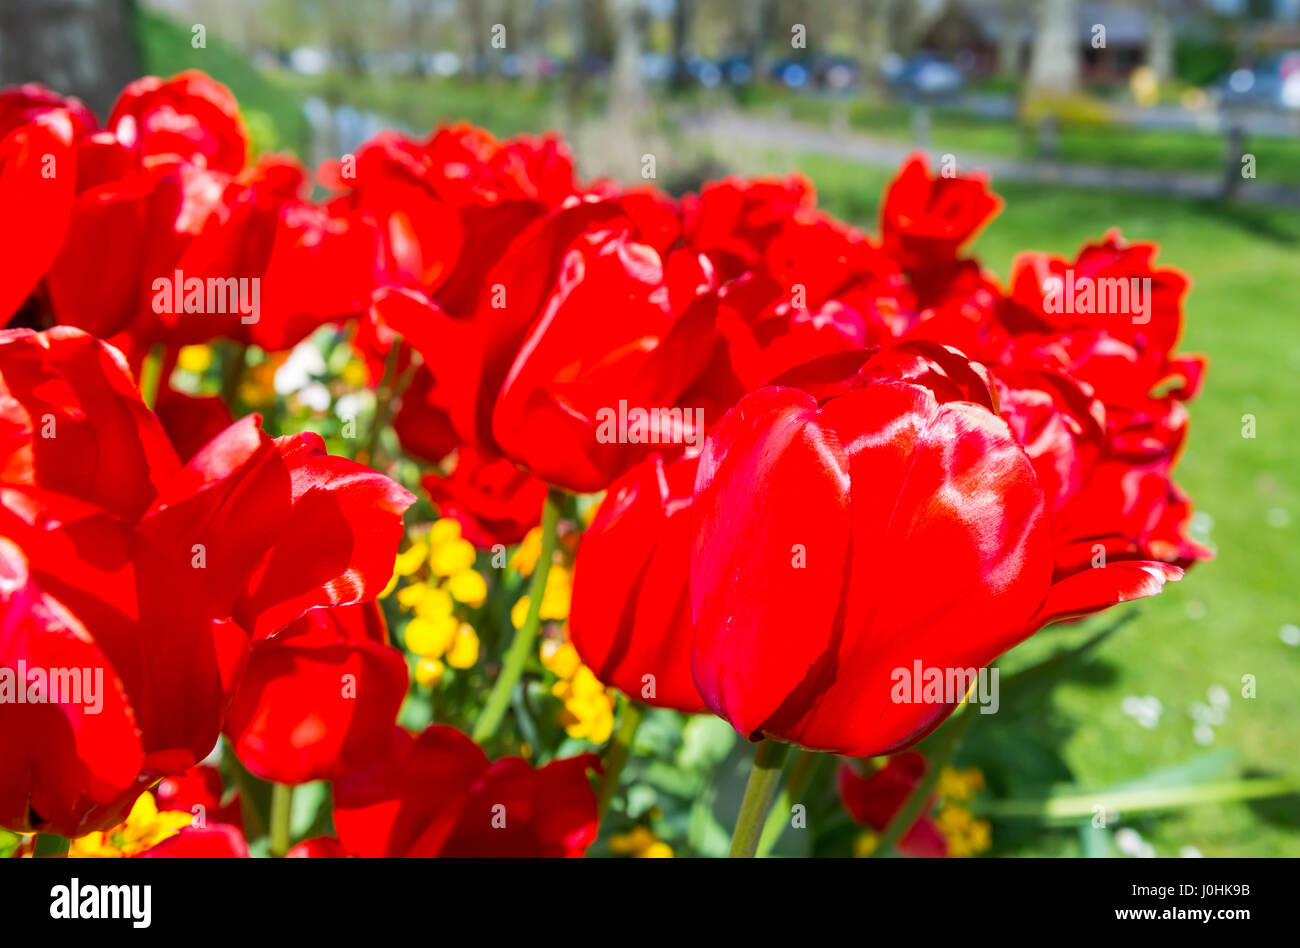 Red tulips (Tulipa) in bloom in Spring in West Sussex, England, UK. - Stock Image